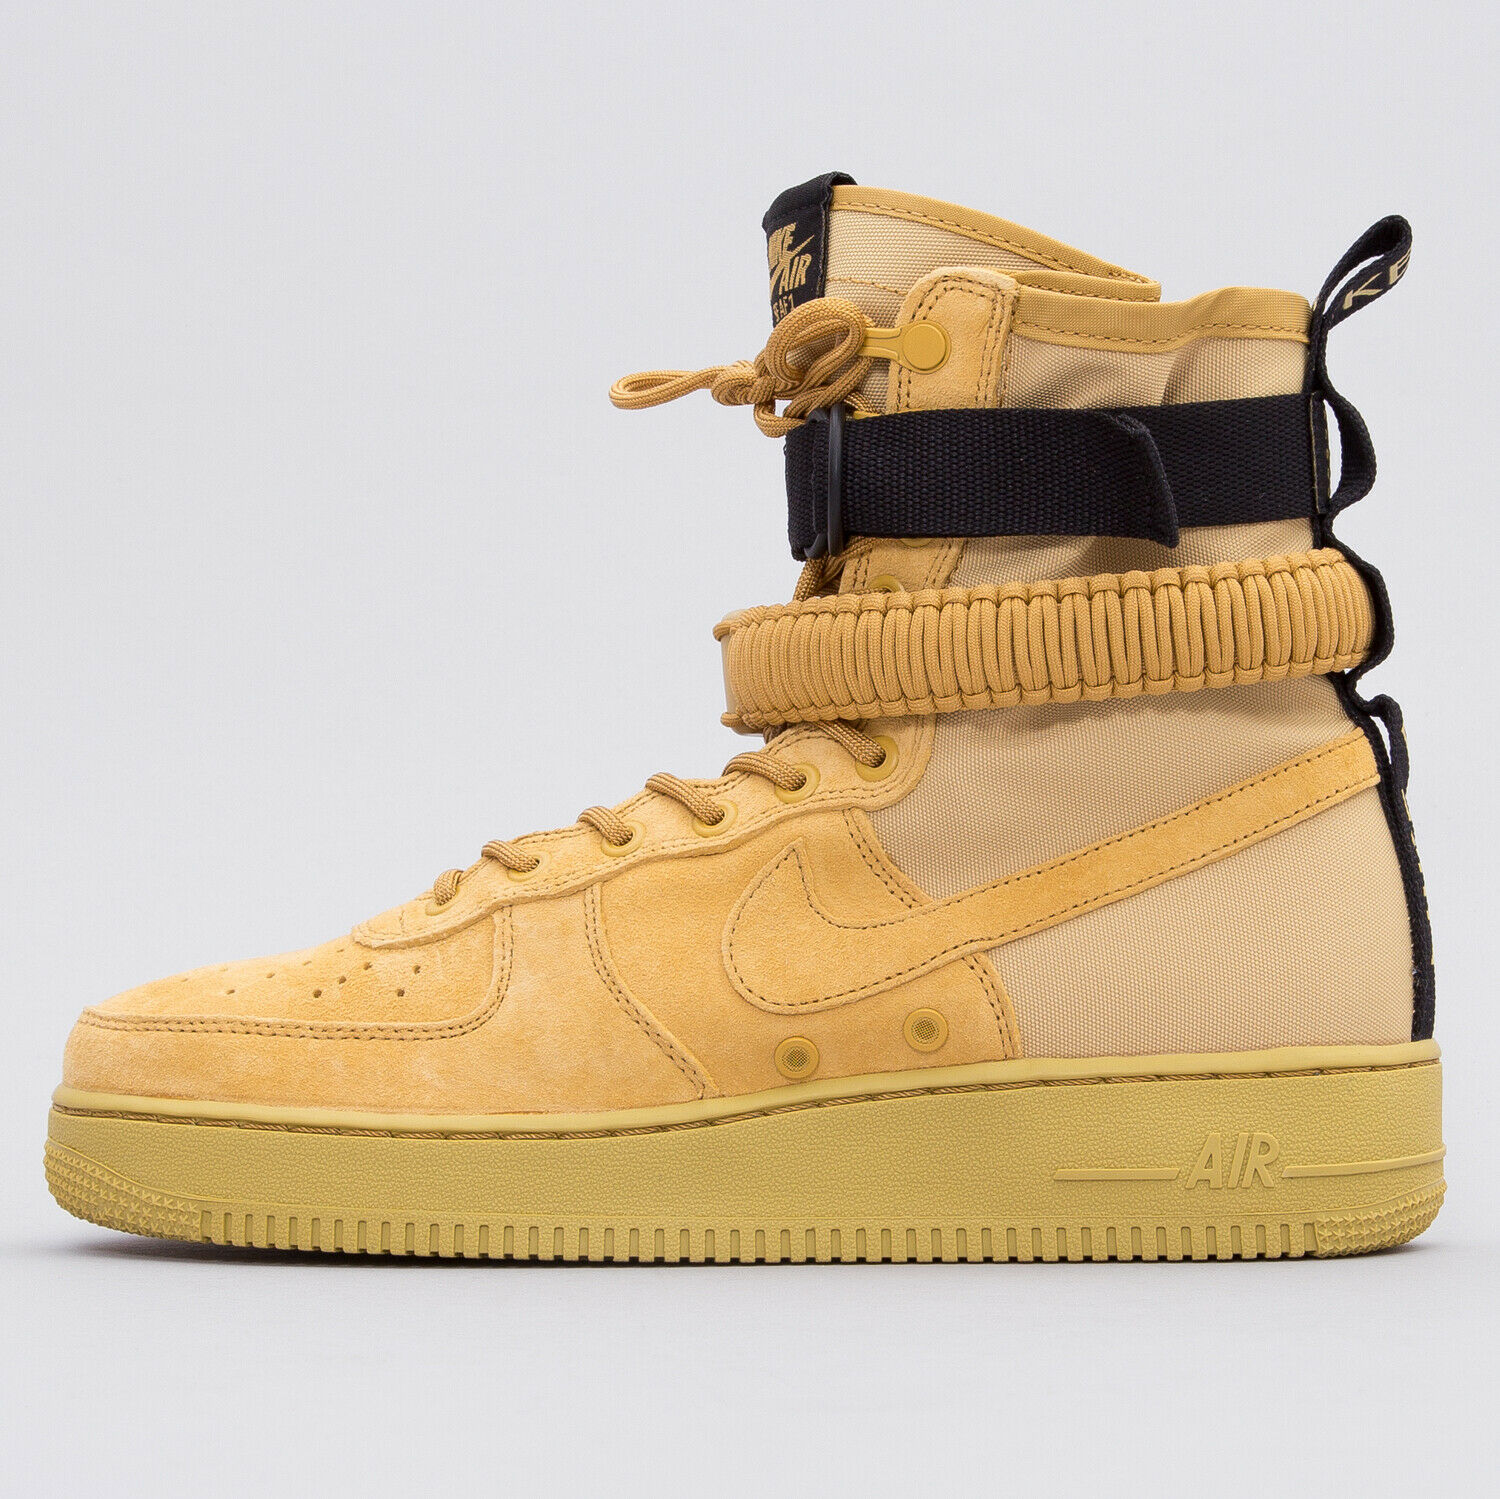 Nike SF AF1 High Club gold Wheat Special Force